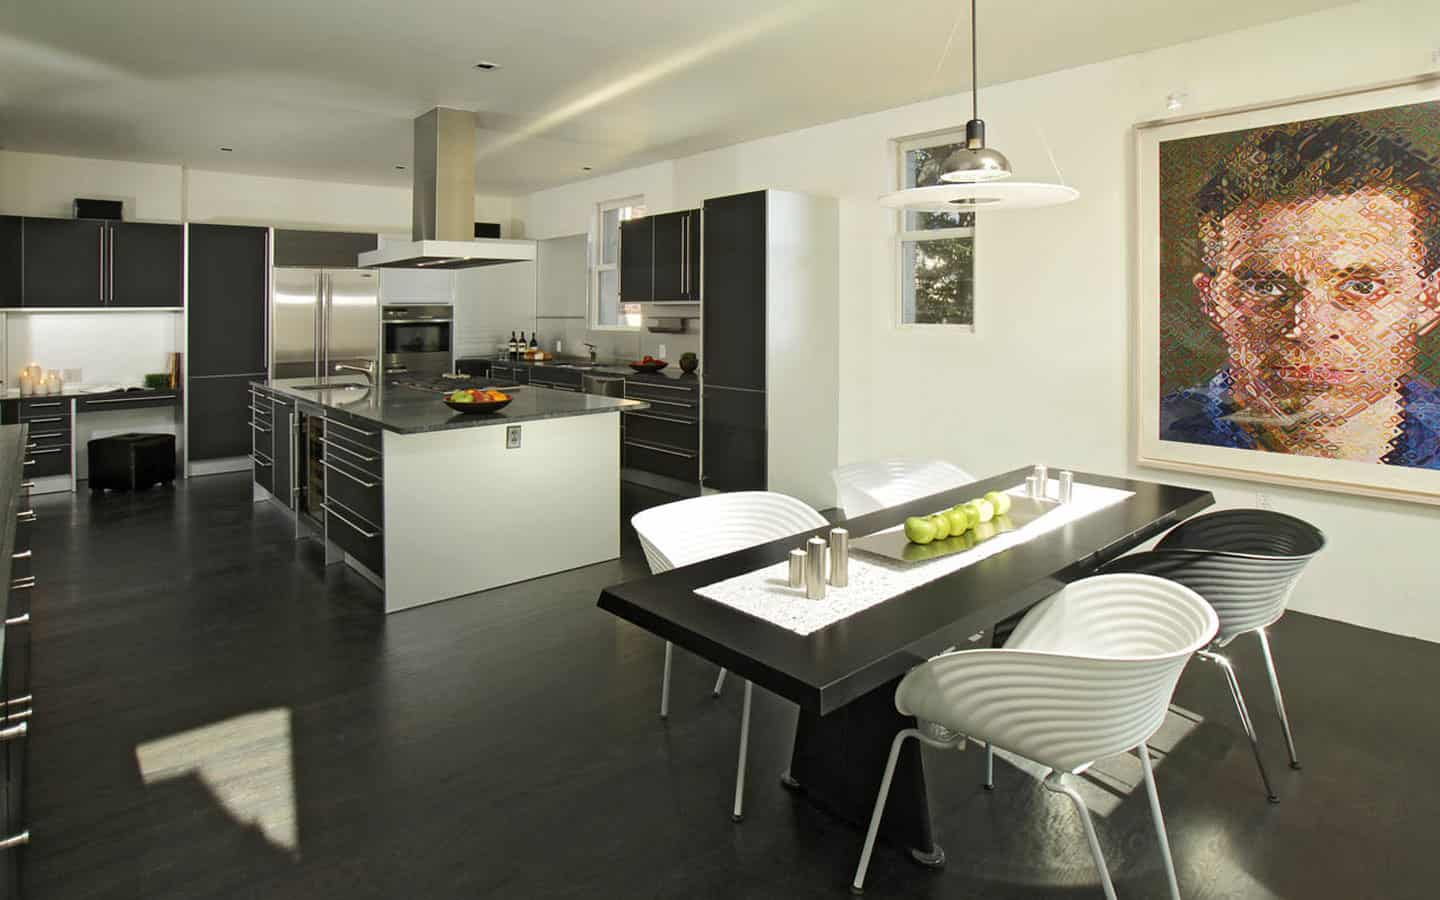 Large u-shaped black kitchen with very dark wood flooring and a black kitchen dining table.